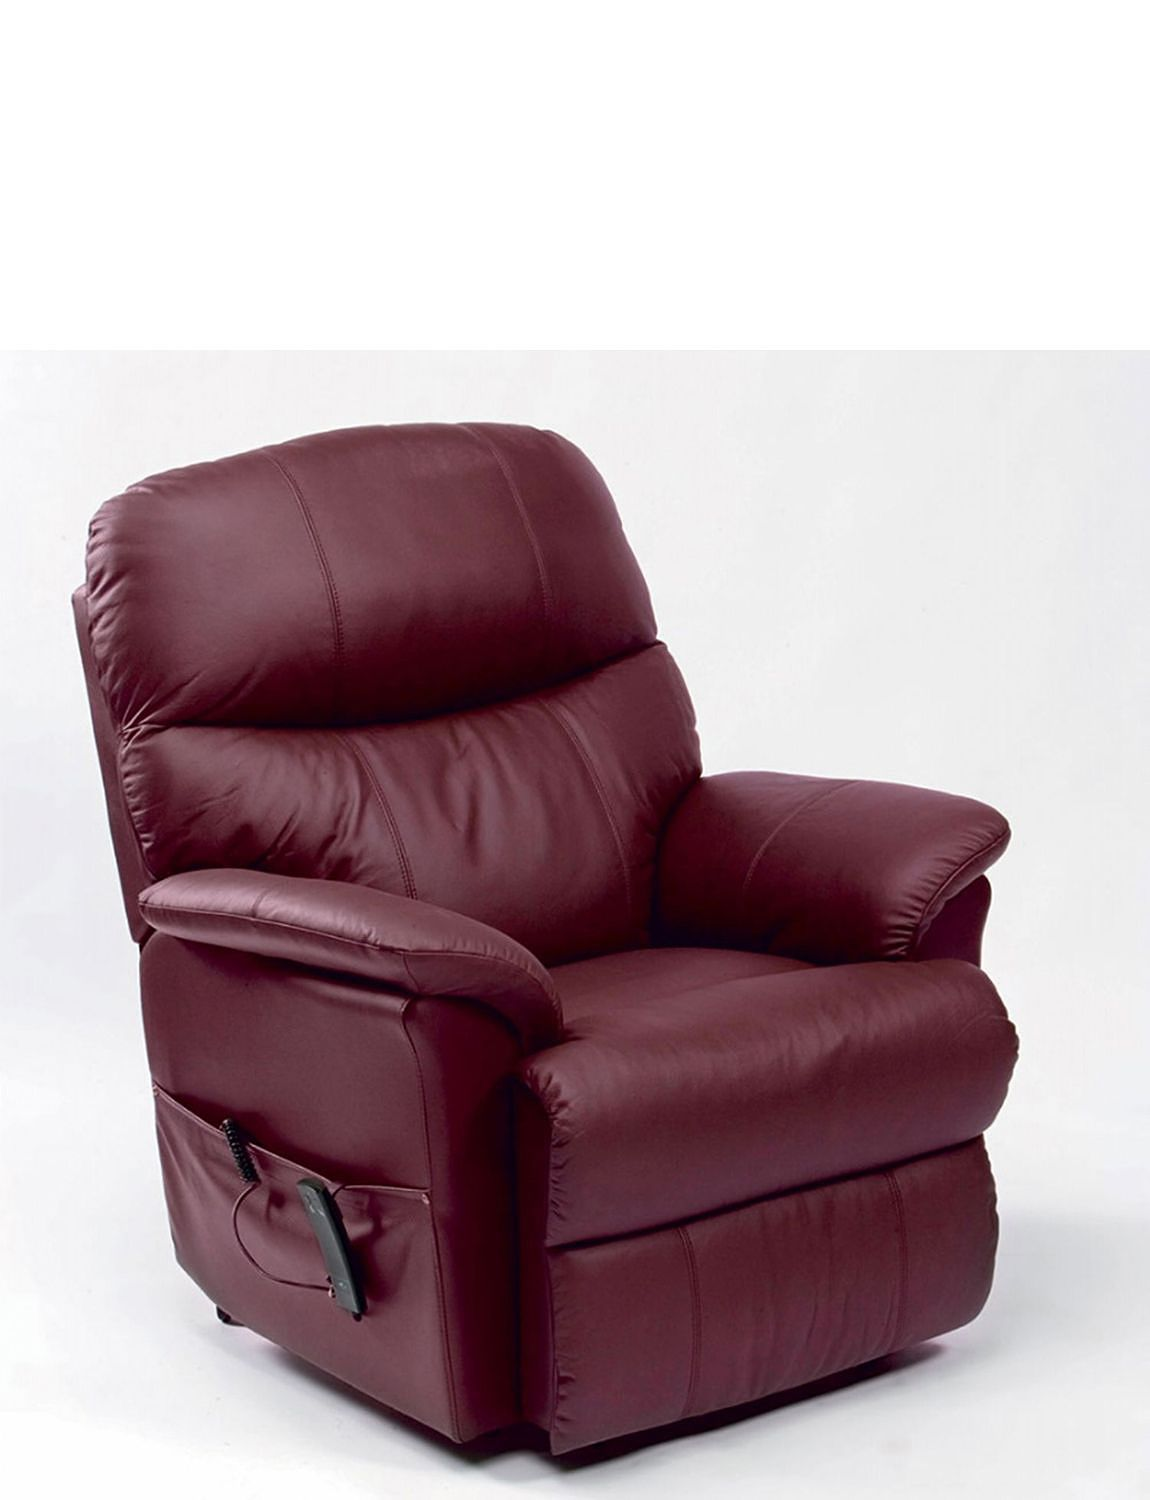 Leather Rise And Recliner Chair Home Living Room Chums